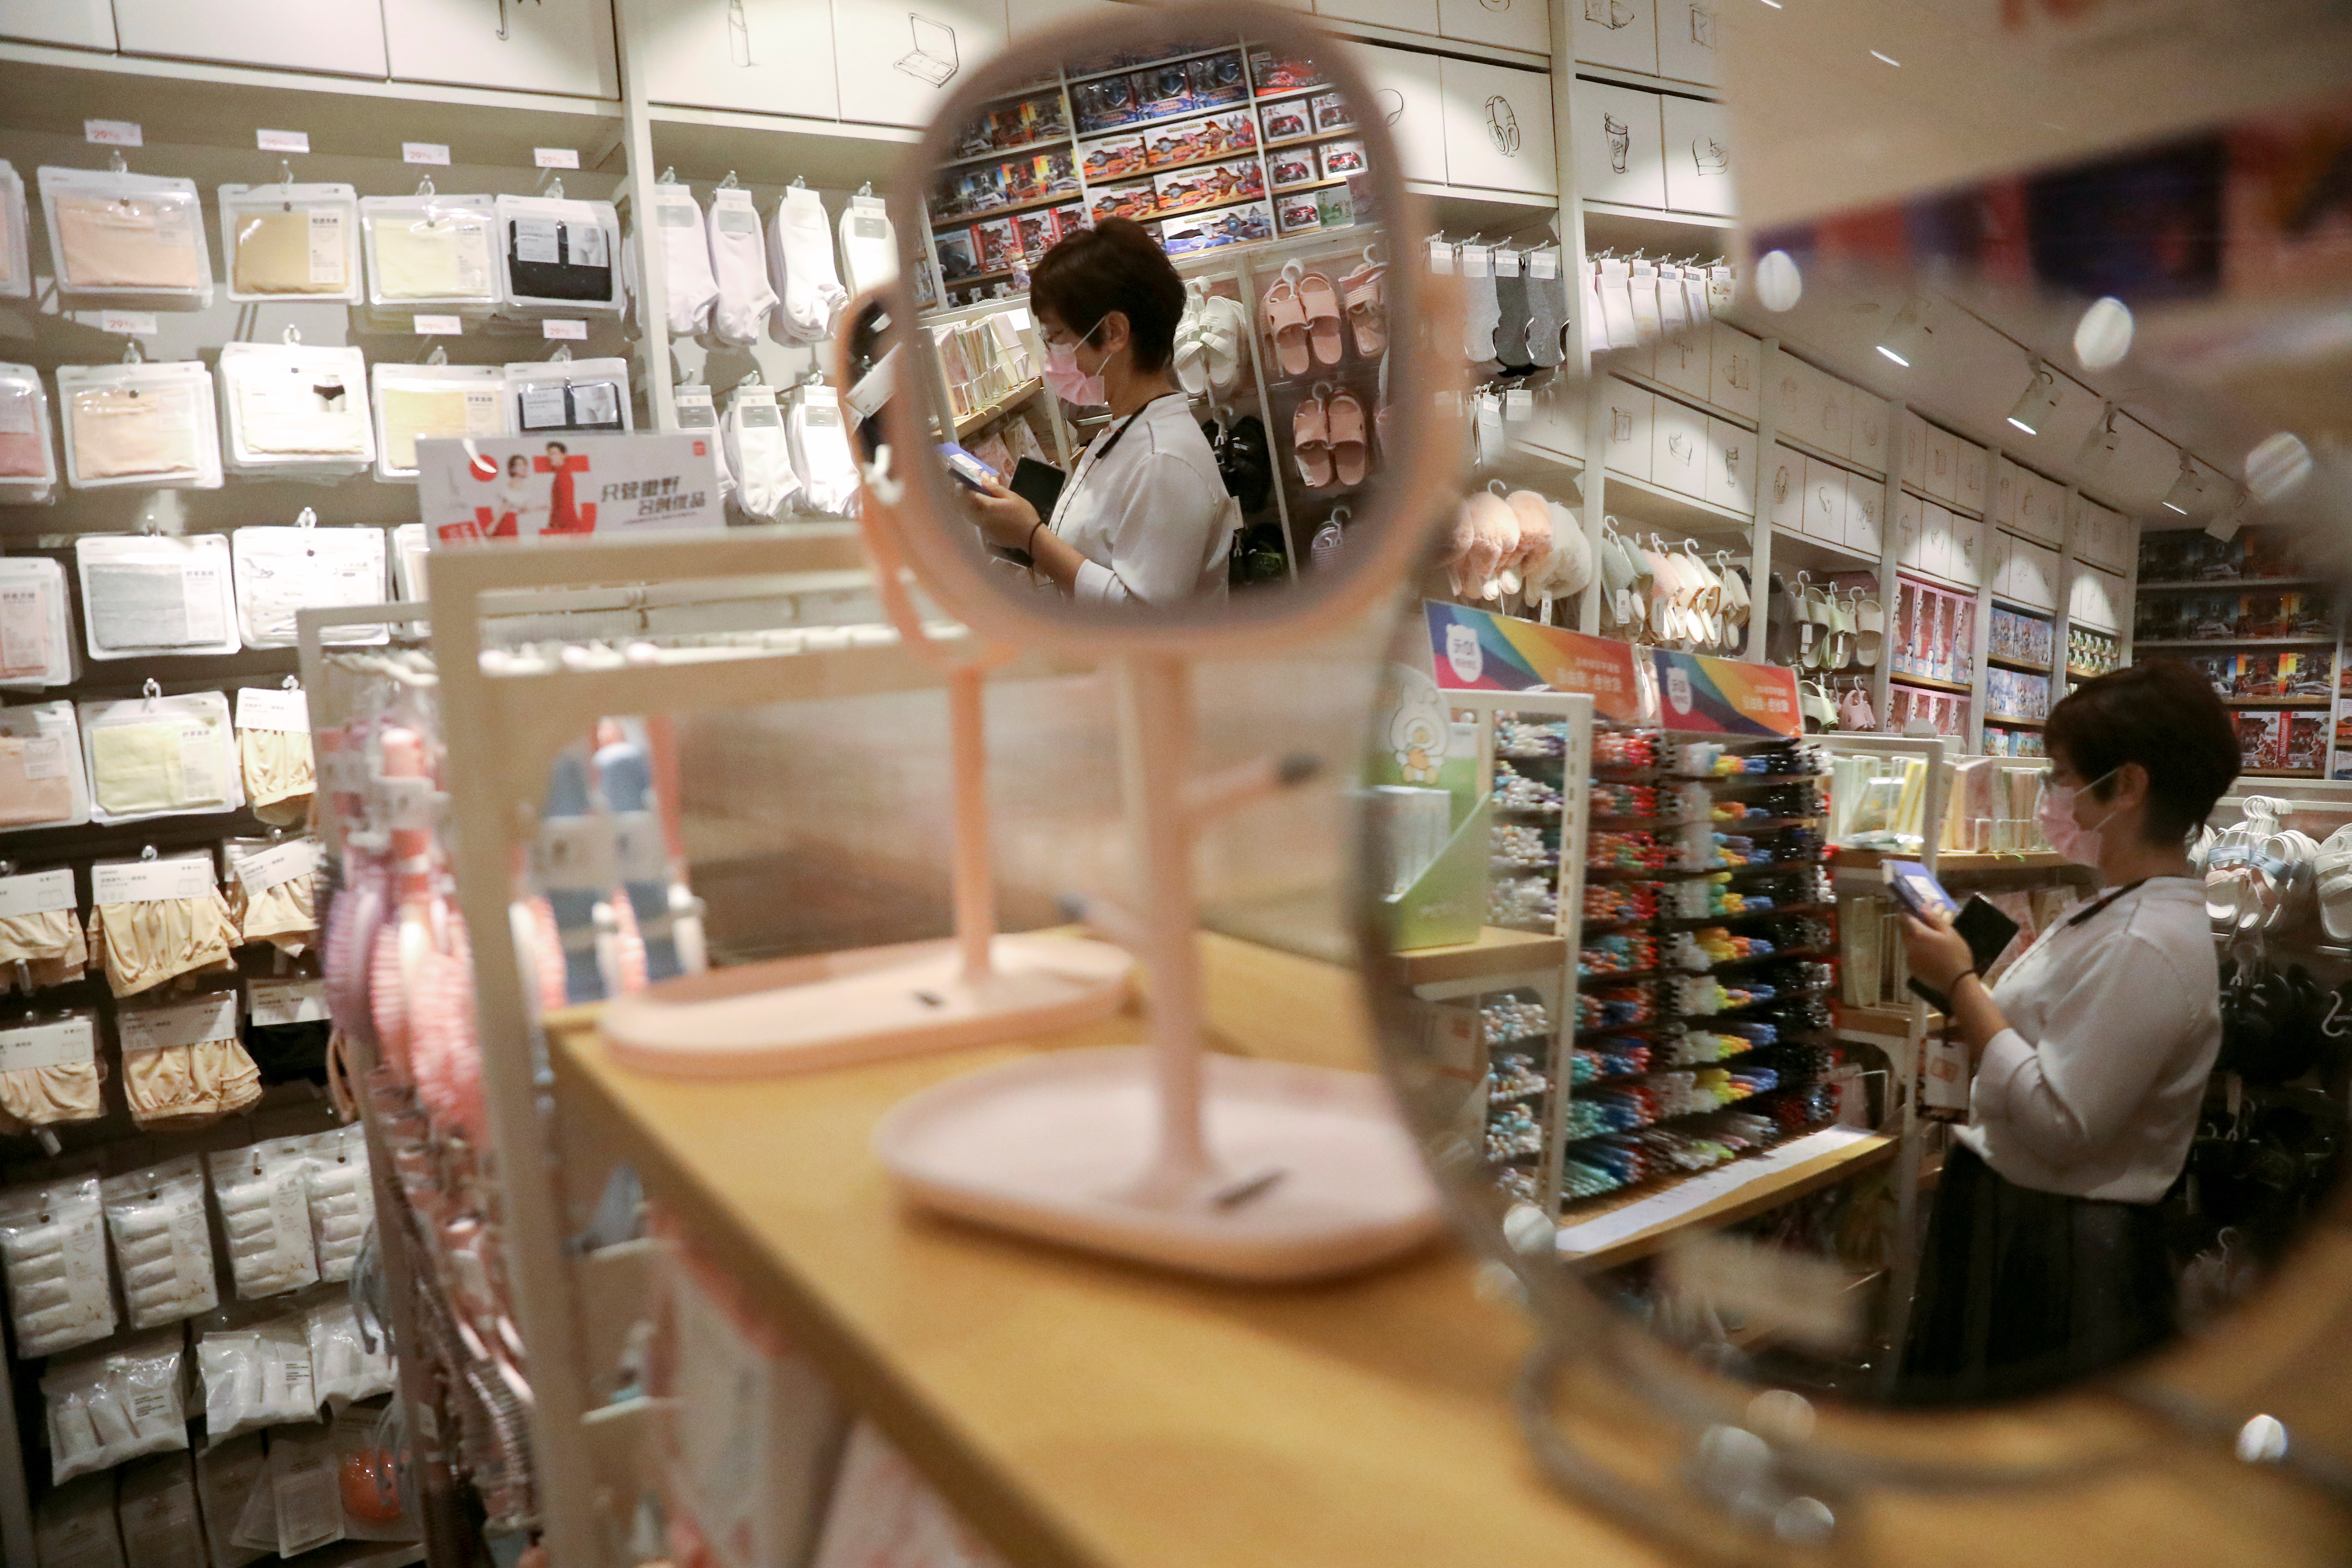 A customer shops at a store of Chinese retailer MINISO Group in Beijing, China September 13, 2021. REUTERS/Tingshu Wang